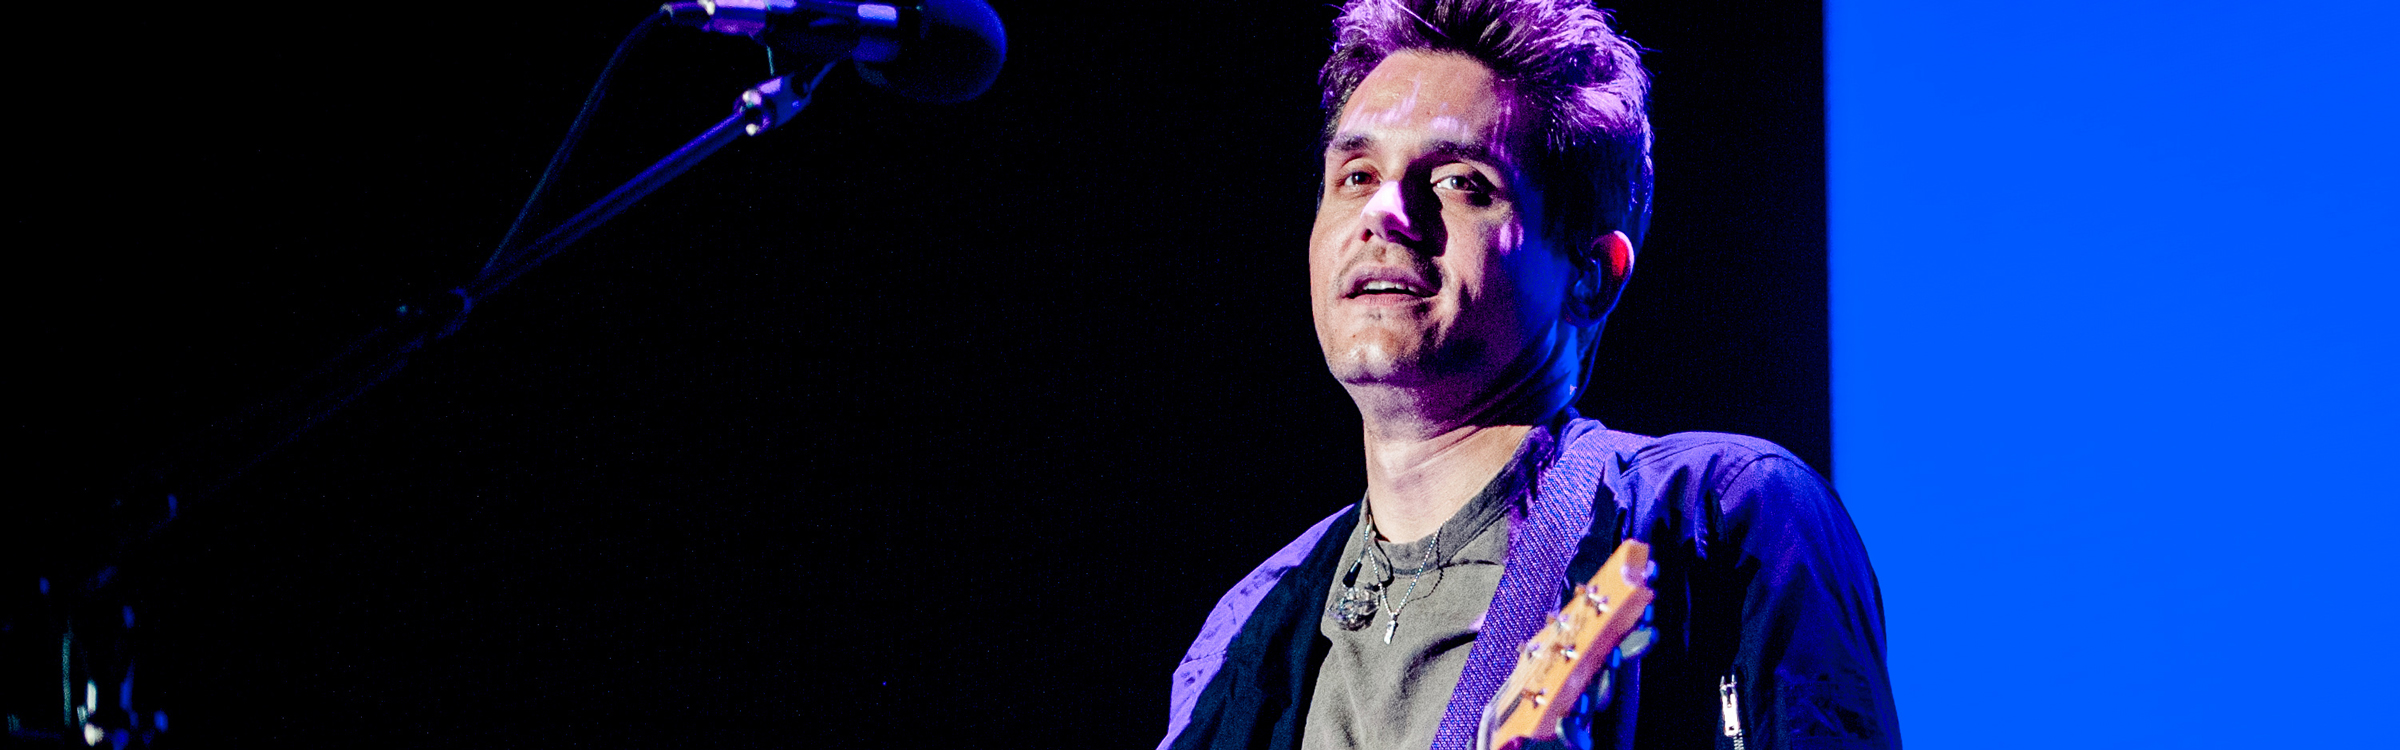 Johnmayer63 header